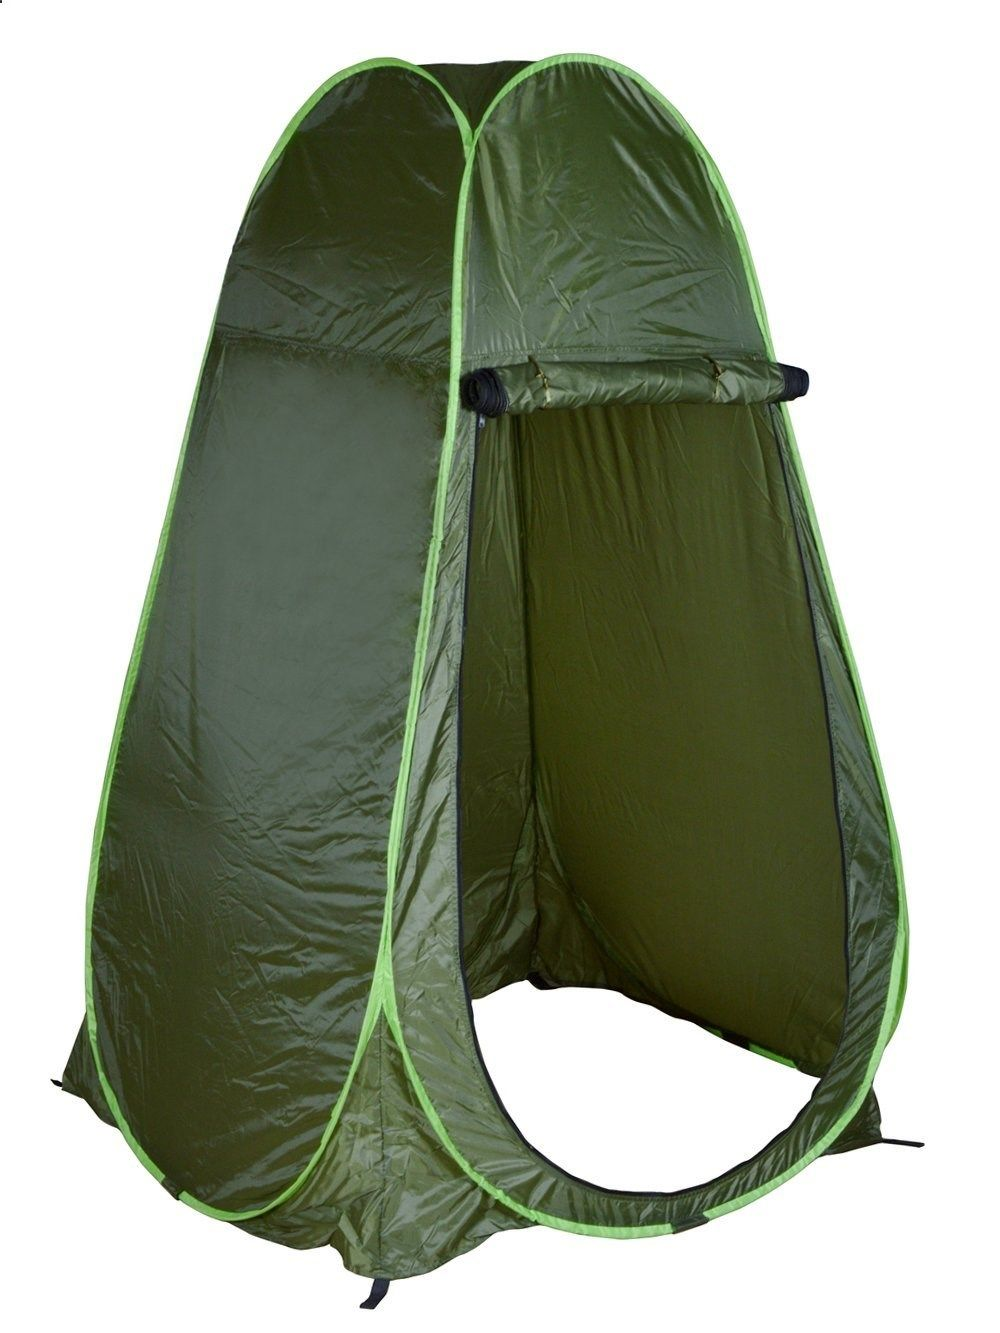 Camping toilet tms portable green outdoor pop up tent